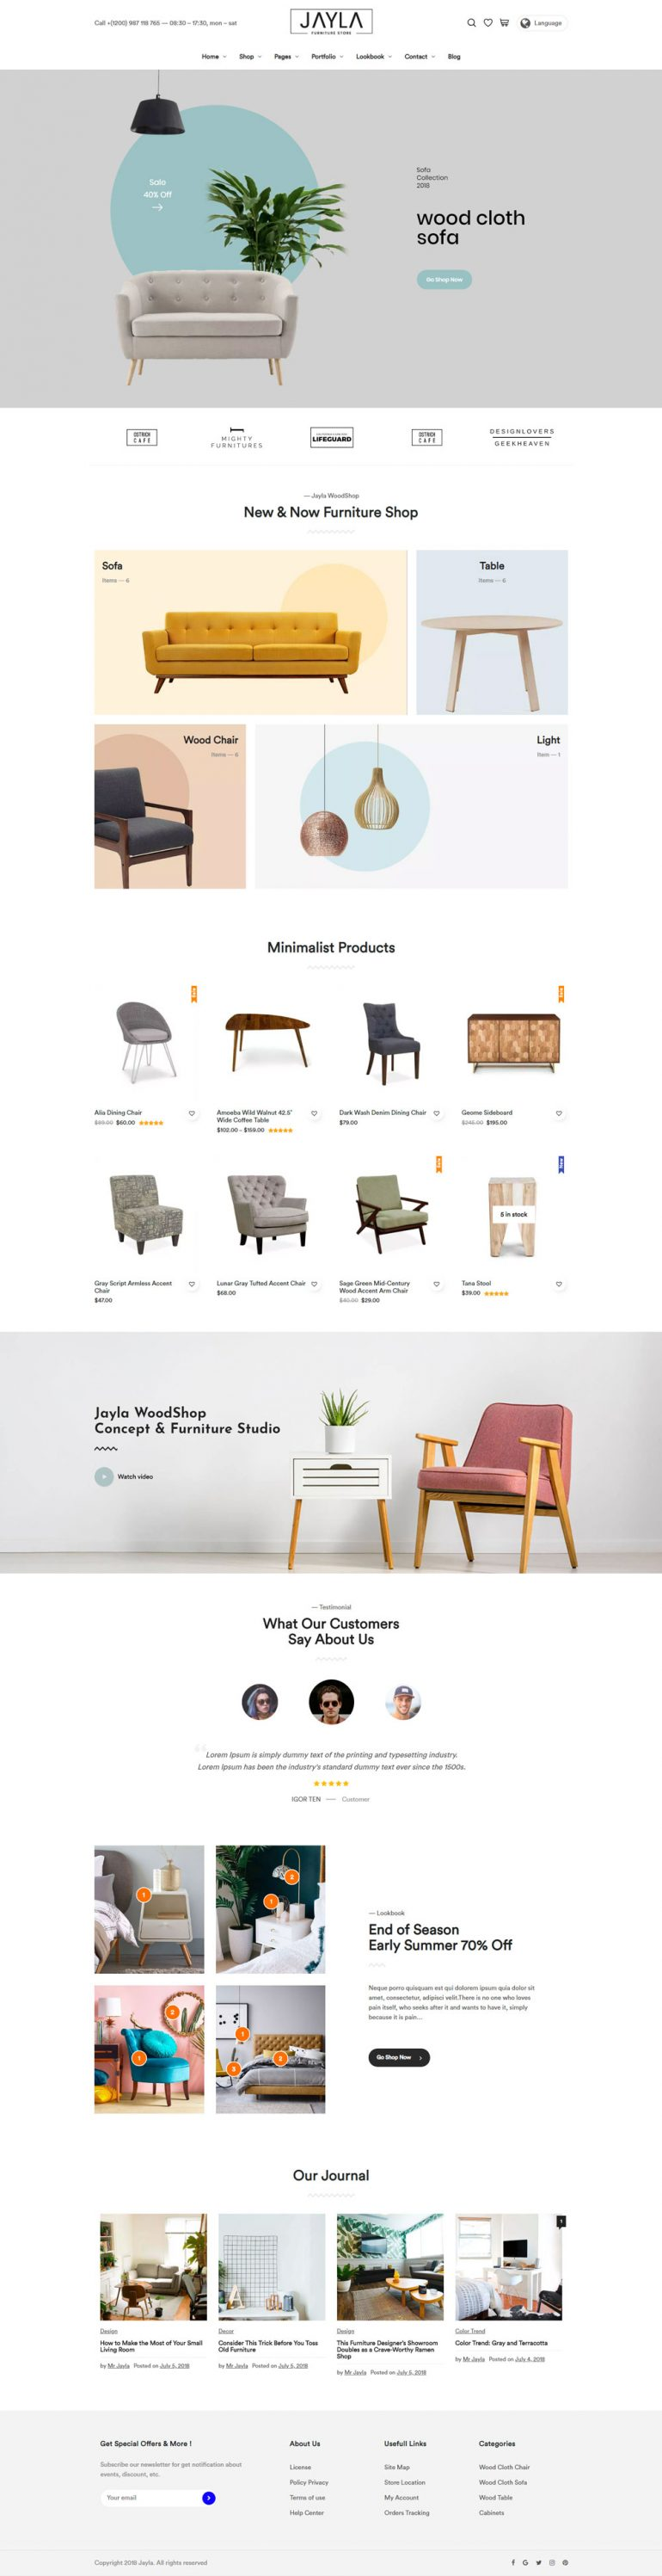 Jayla Furniture